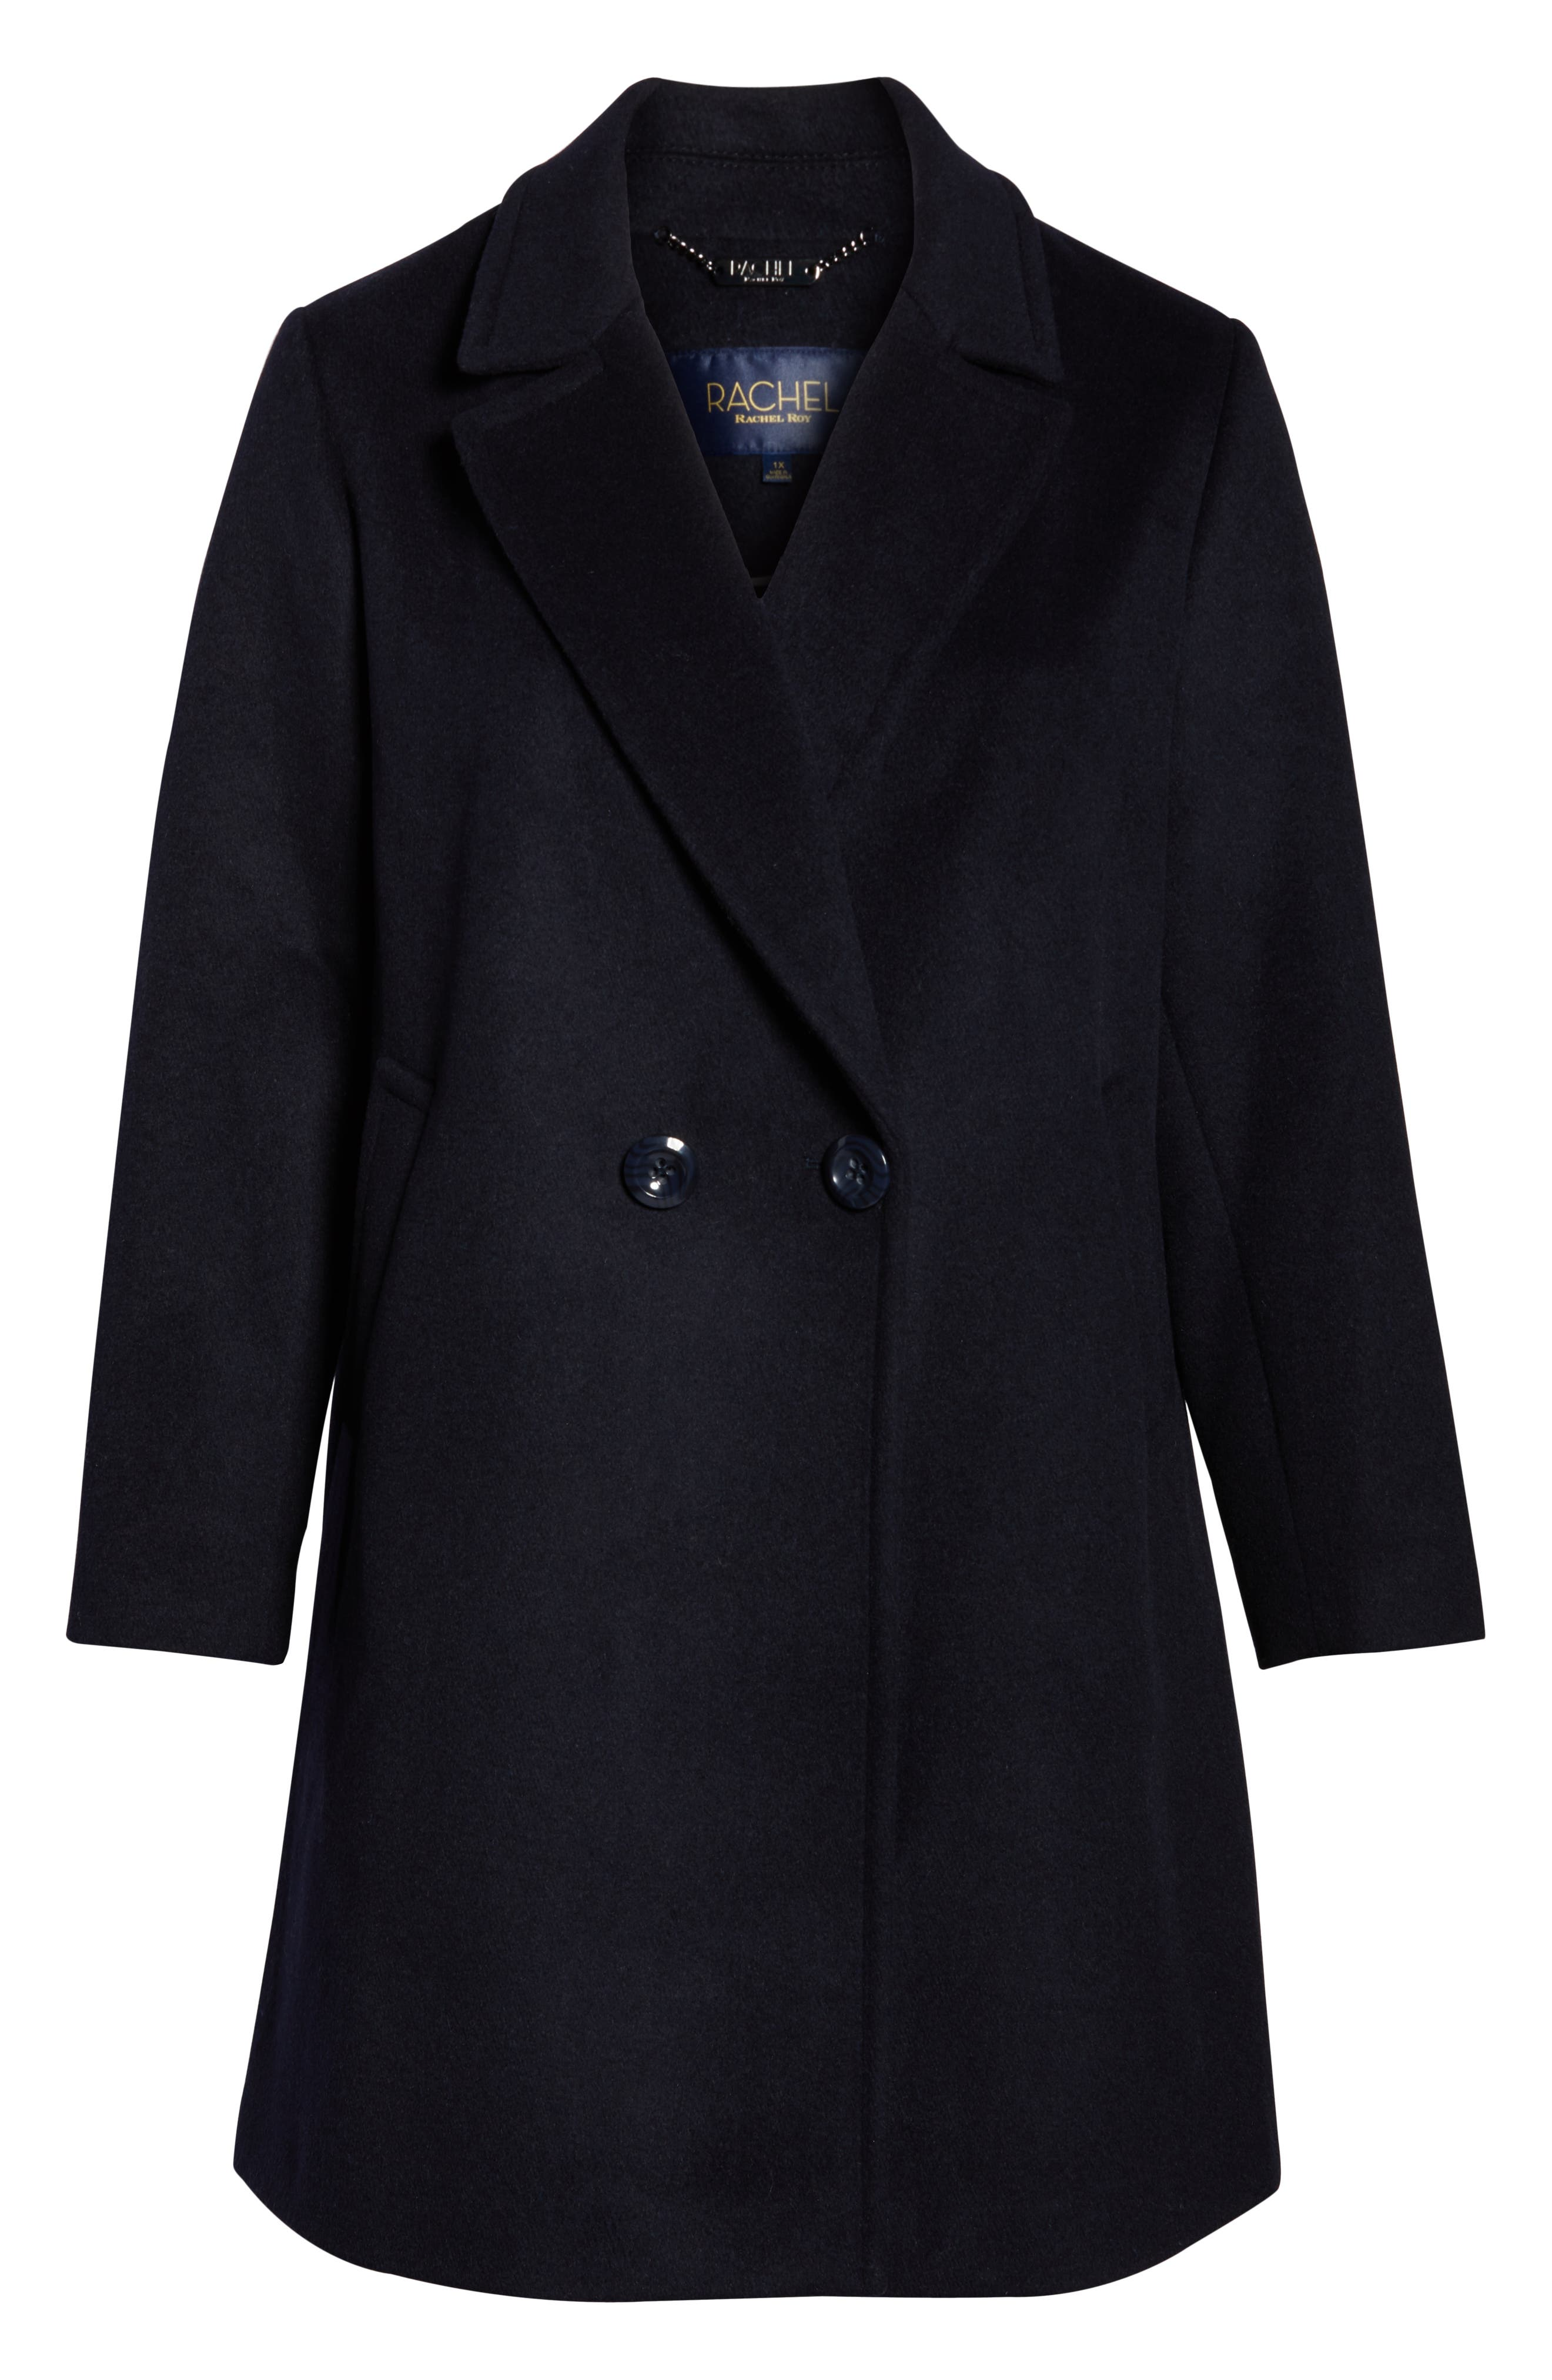 Wool Blend Notch Collar Coat,                             Alternate thumbnail 6, color,                             NAVY